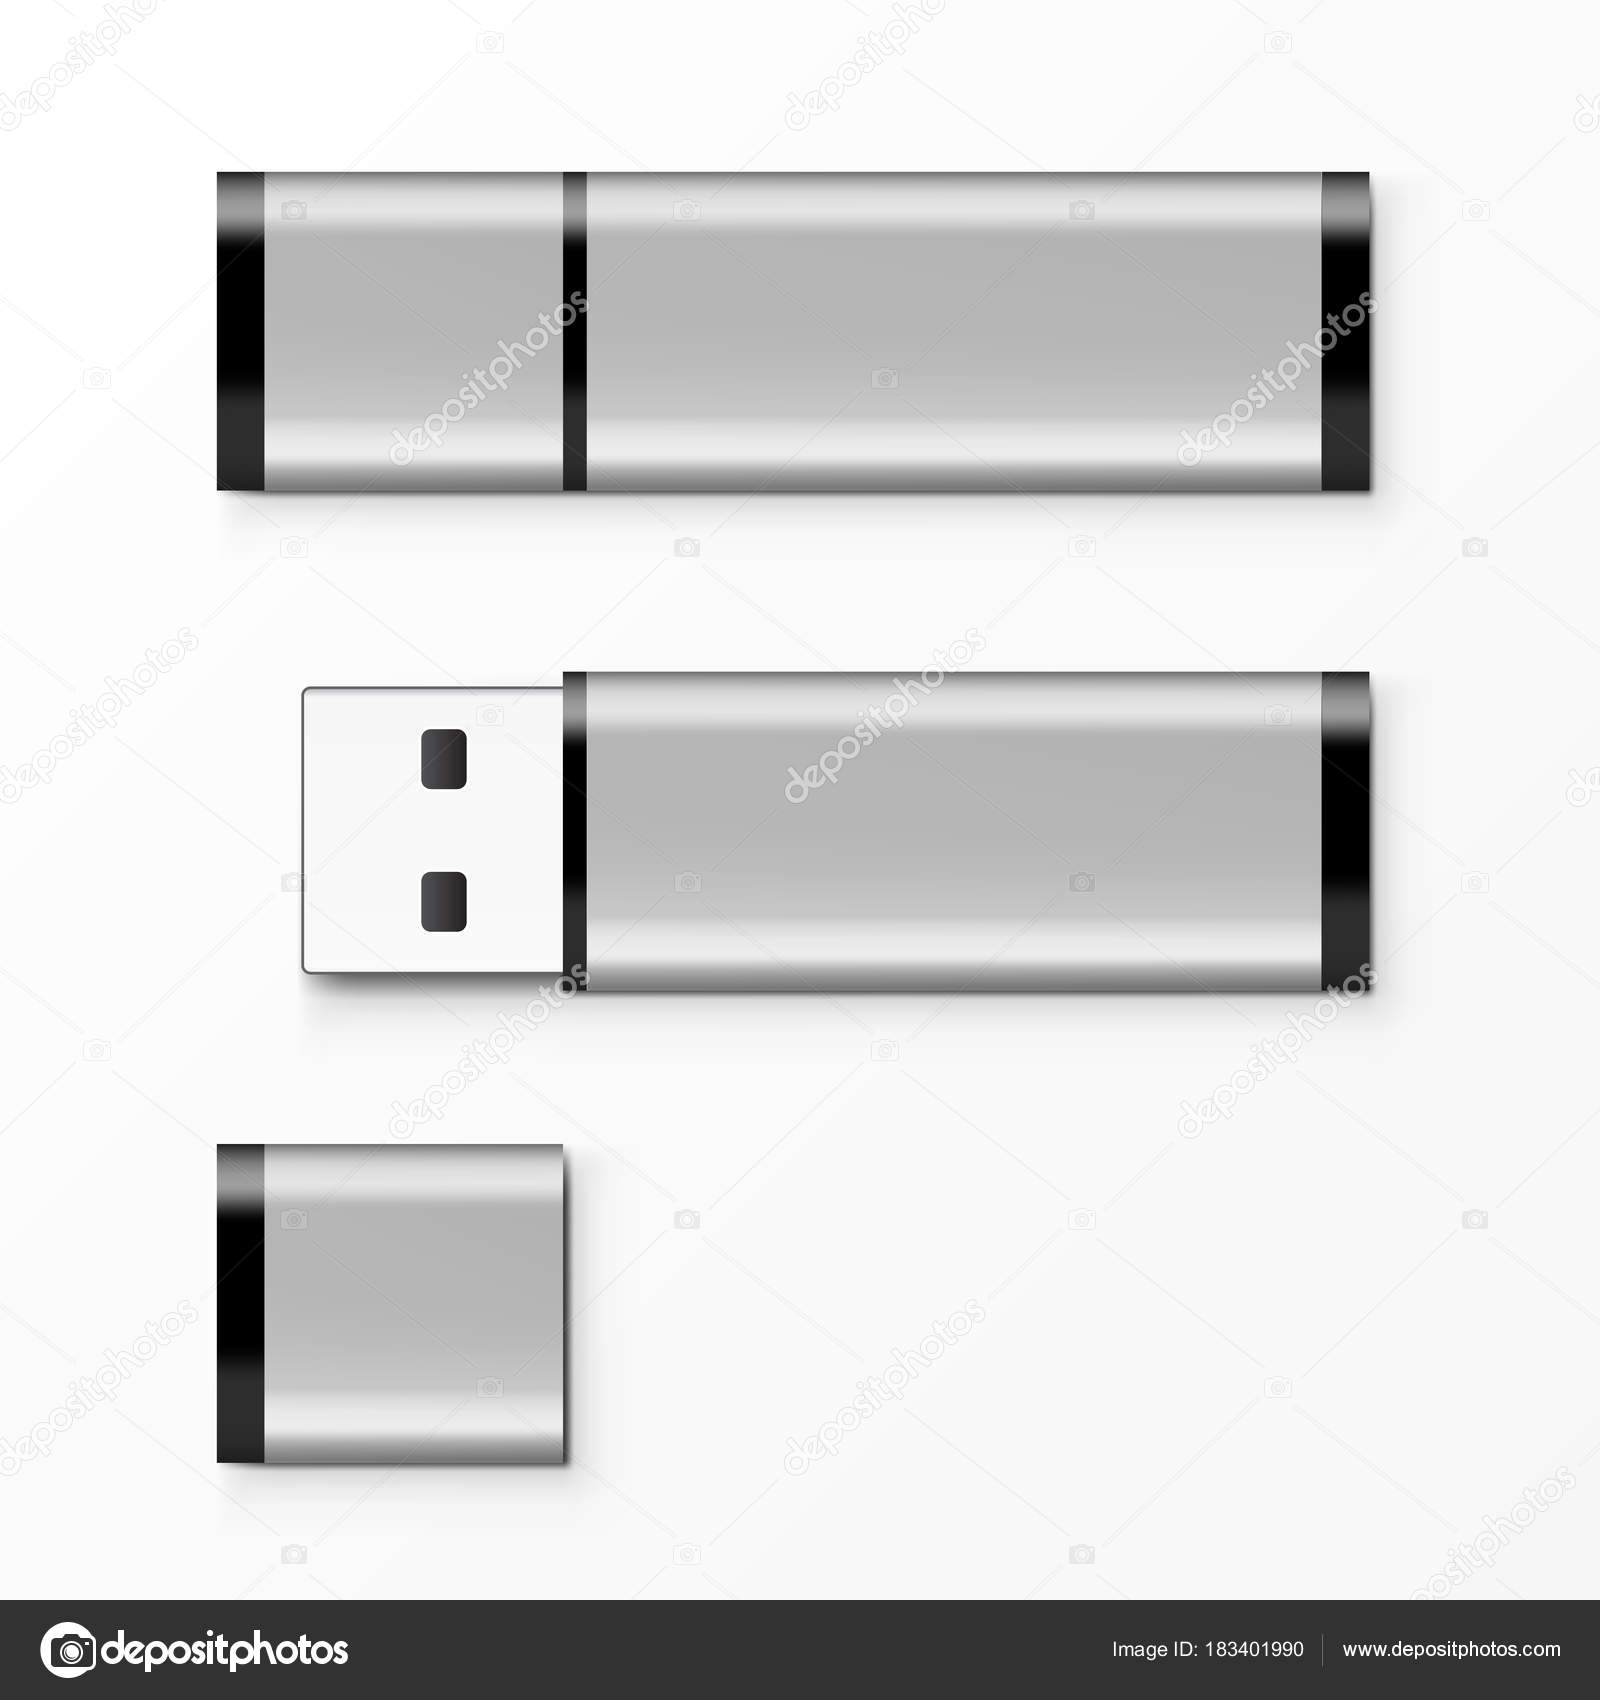 Chrome Usb Flash Drive Template For Advertising Branding And Corporate Identity Stock Vector C Prahprah 183401990